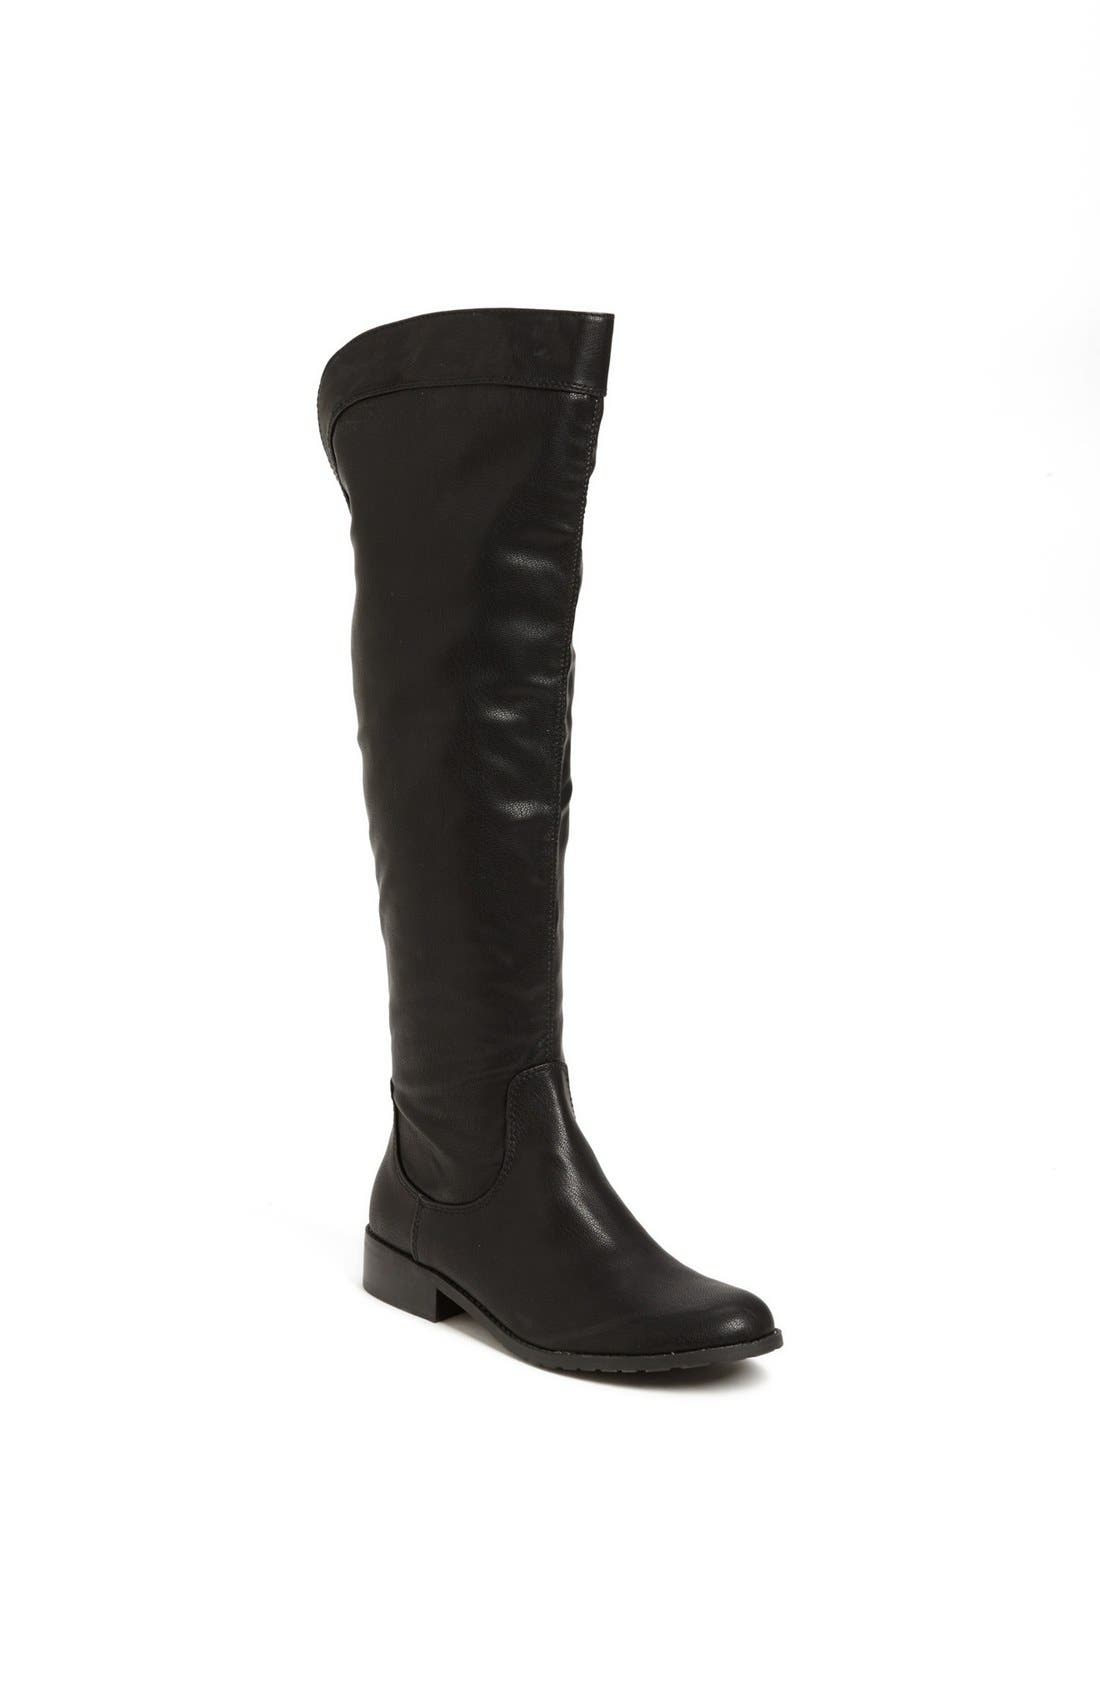 Main Image - Fergie 'Metro' Over the Knee Boot